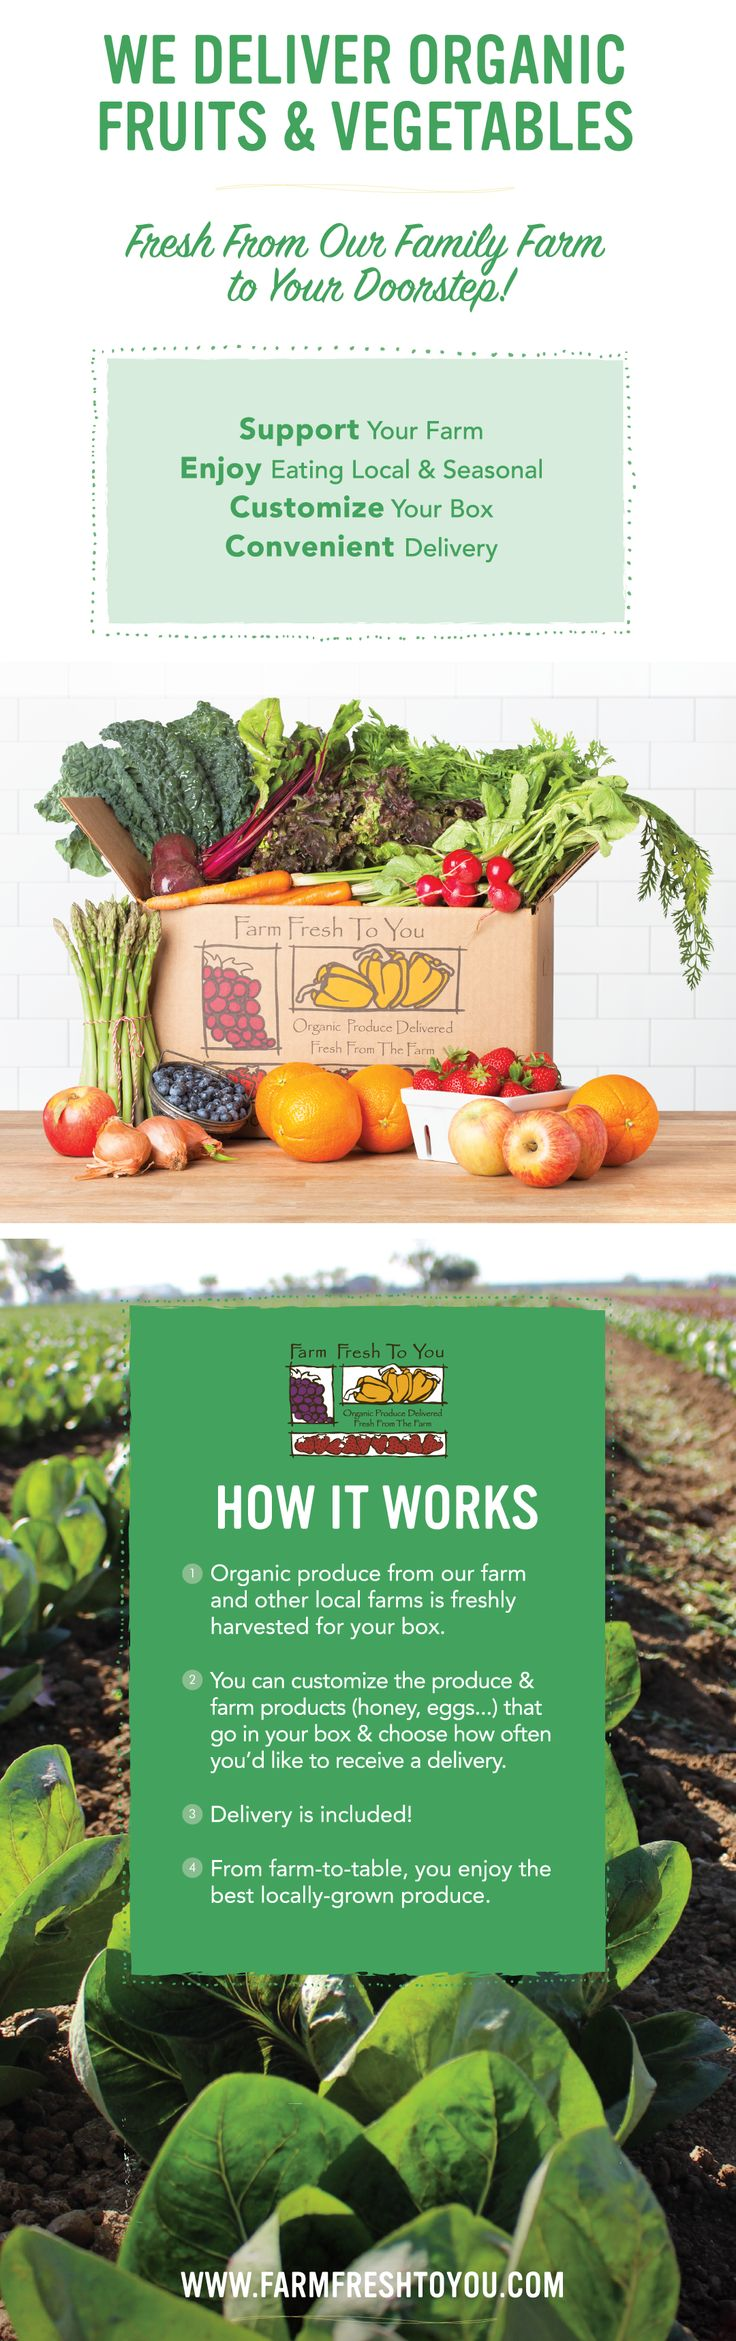 Farm Fresh To You sends you fresh, organic, sustainable produce to help you cook incredible farm to table meals at home.